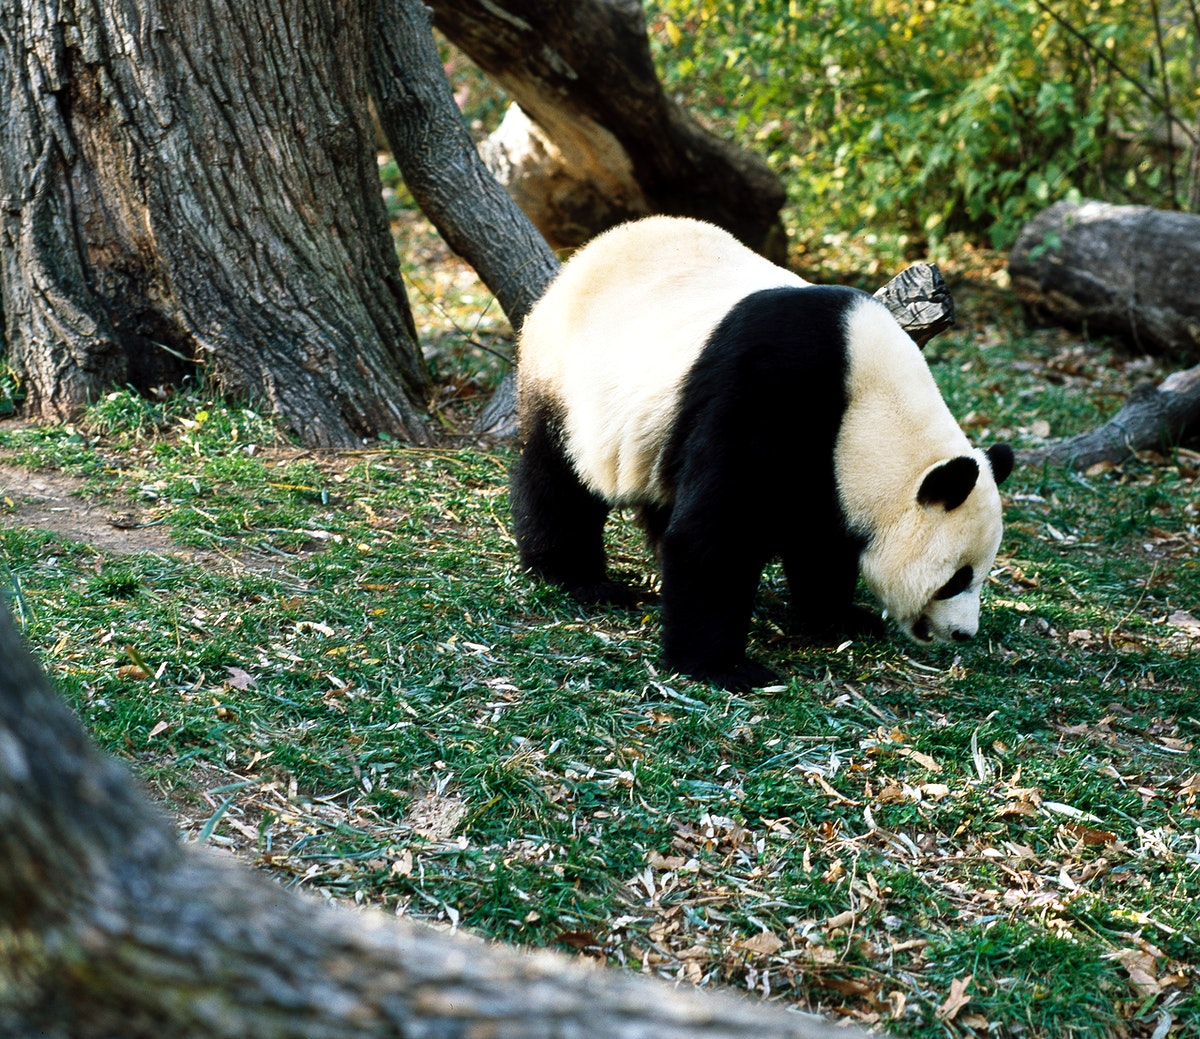 A giant panda, the star attraction at the Smithsonian Institution's National Zoo. Original image from Carol M.…